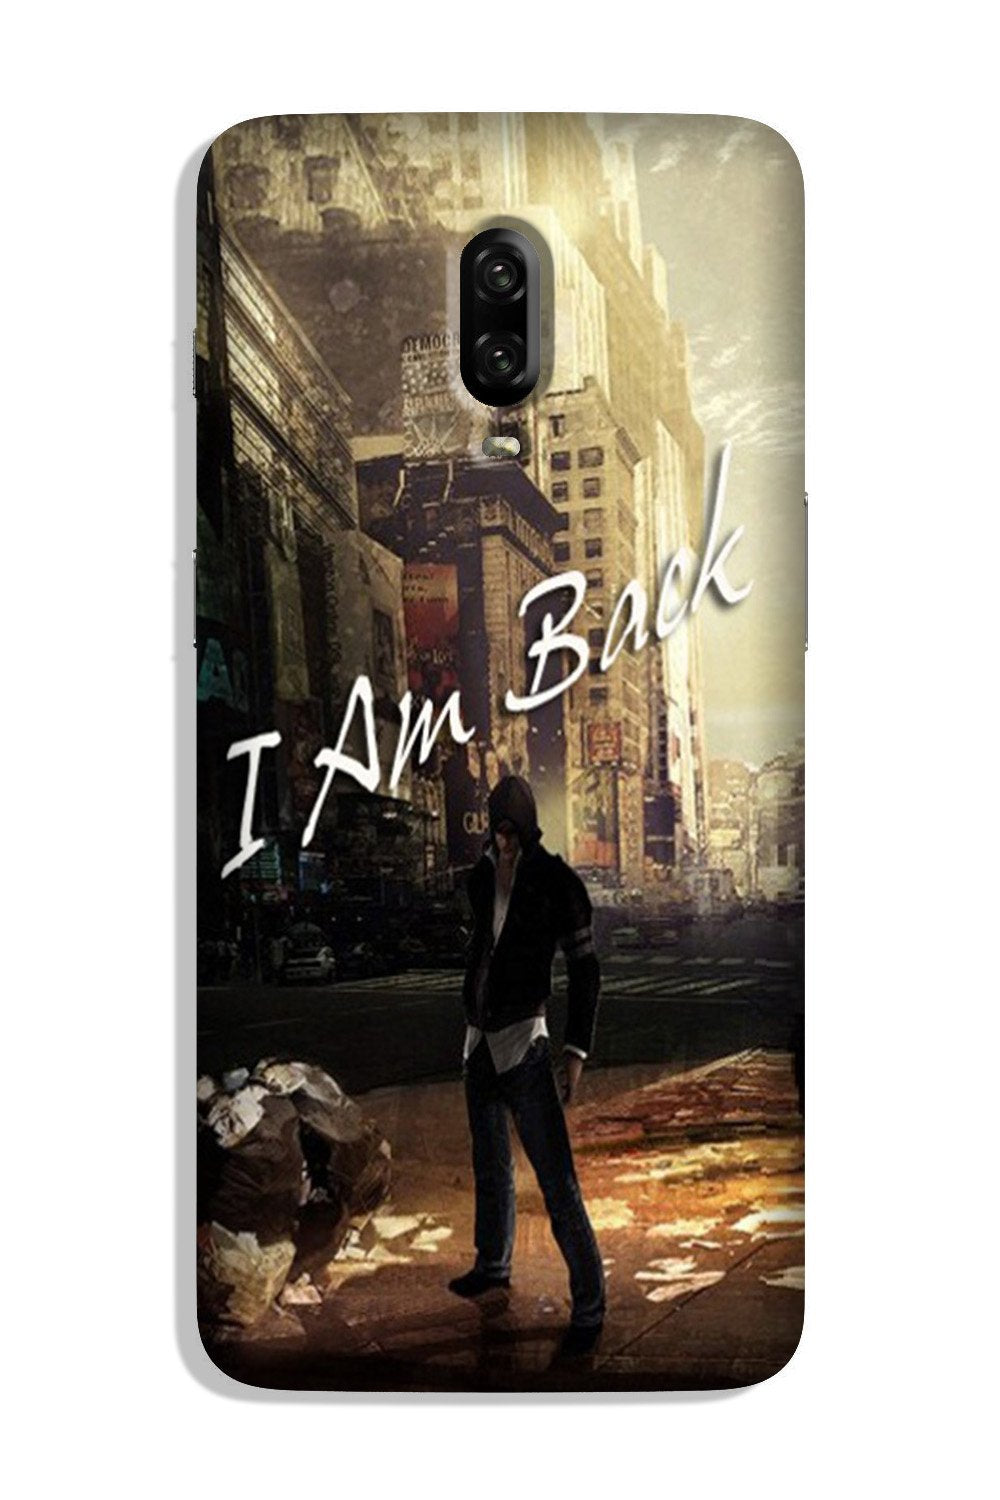 I am Back Case for OnePlus 6T (Design No. 296)